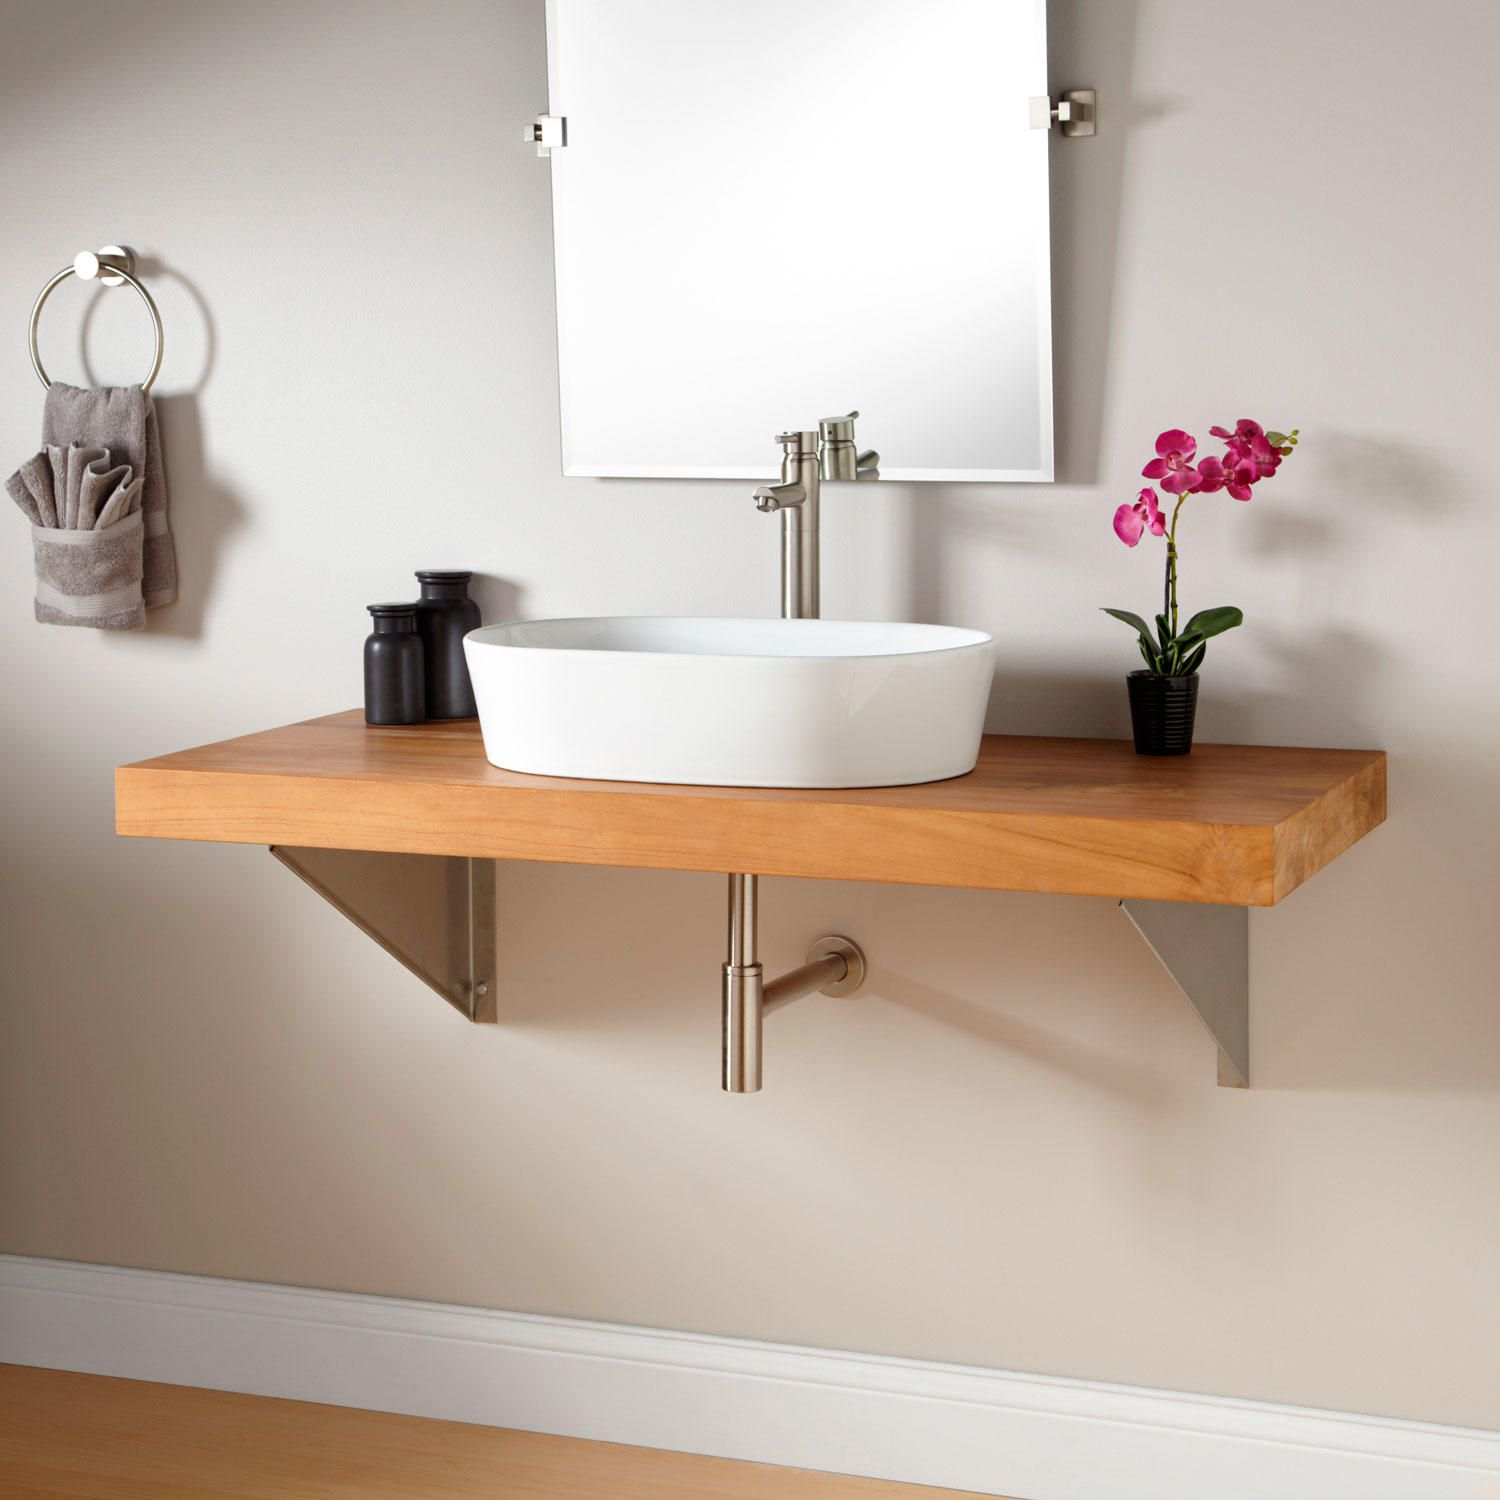 Wall Mount Sink Brackets Bathroom